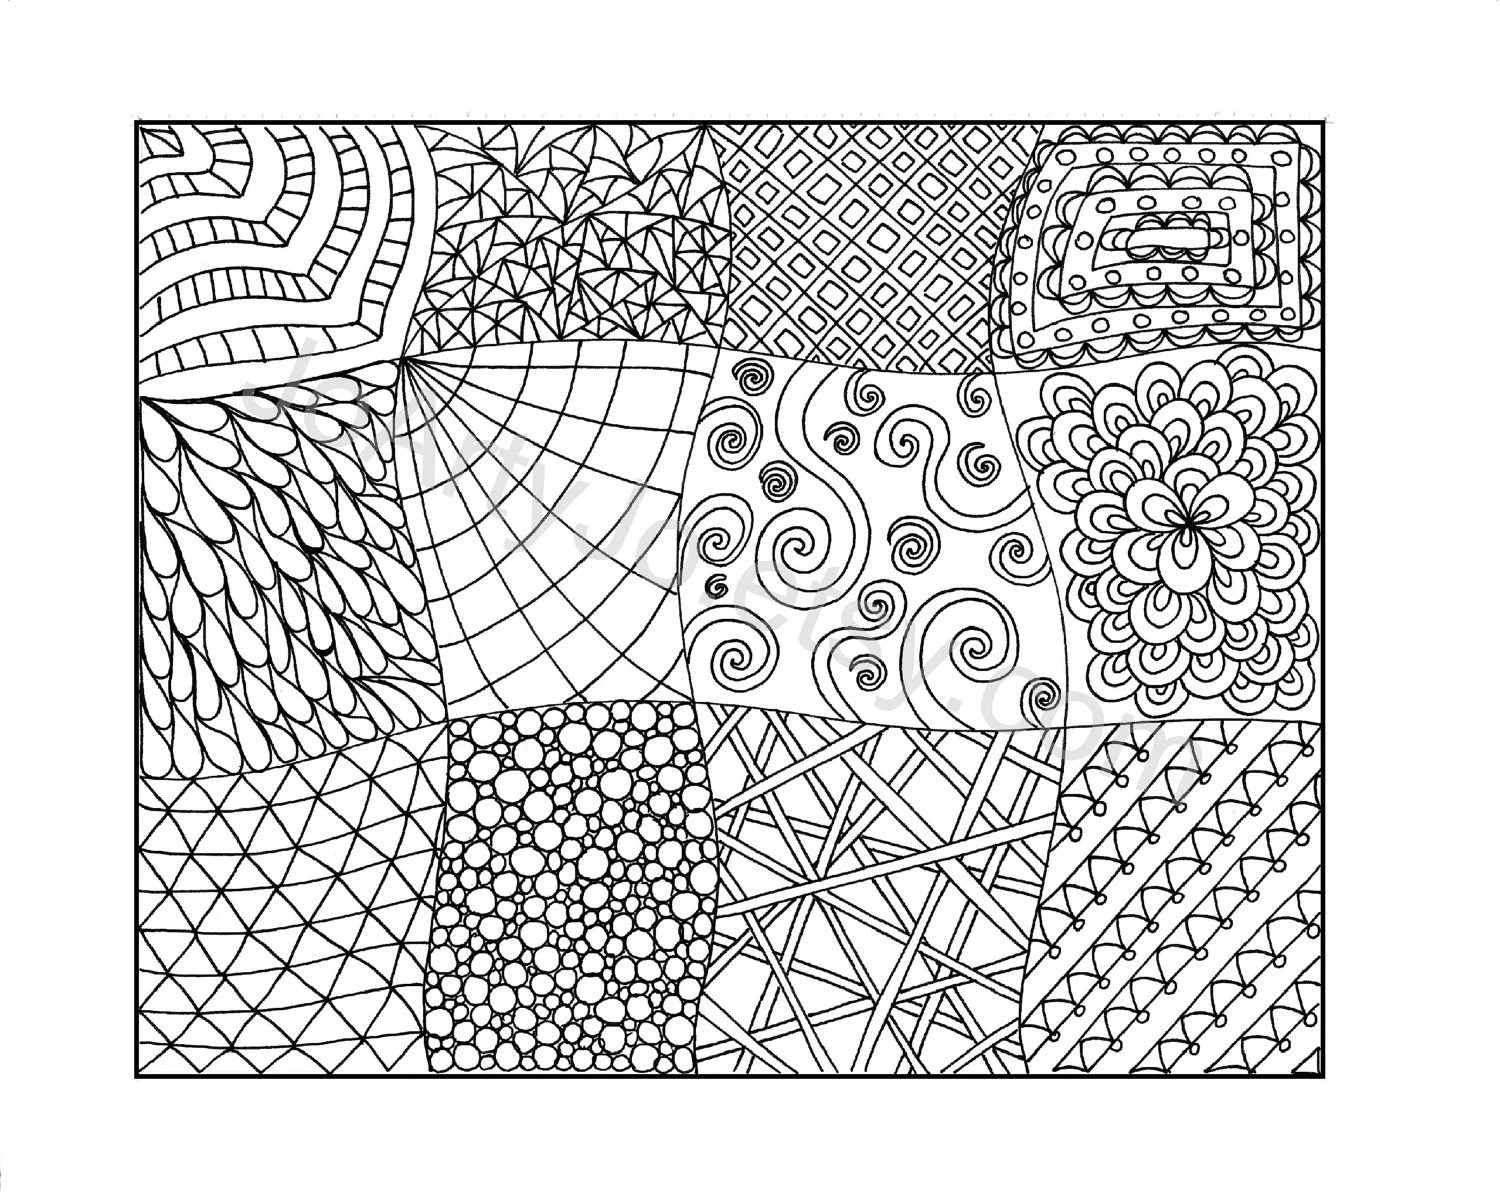 Zendoodle Coloring Page Printable Zentangle Inspired